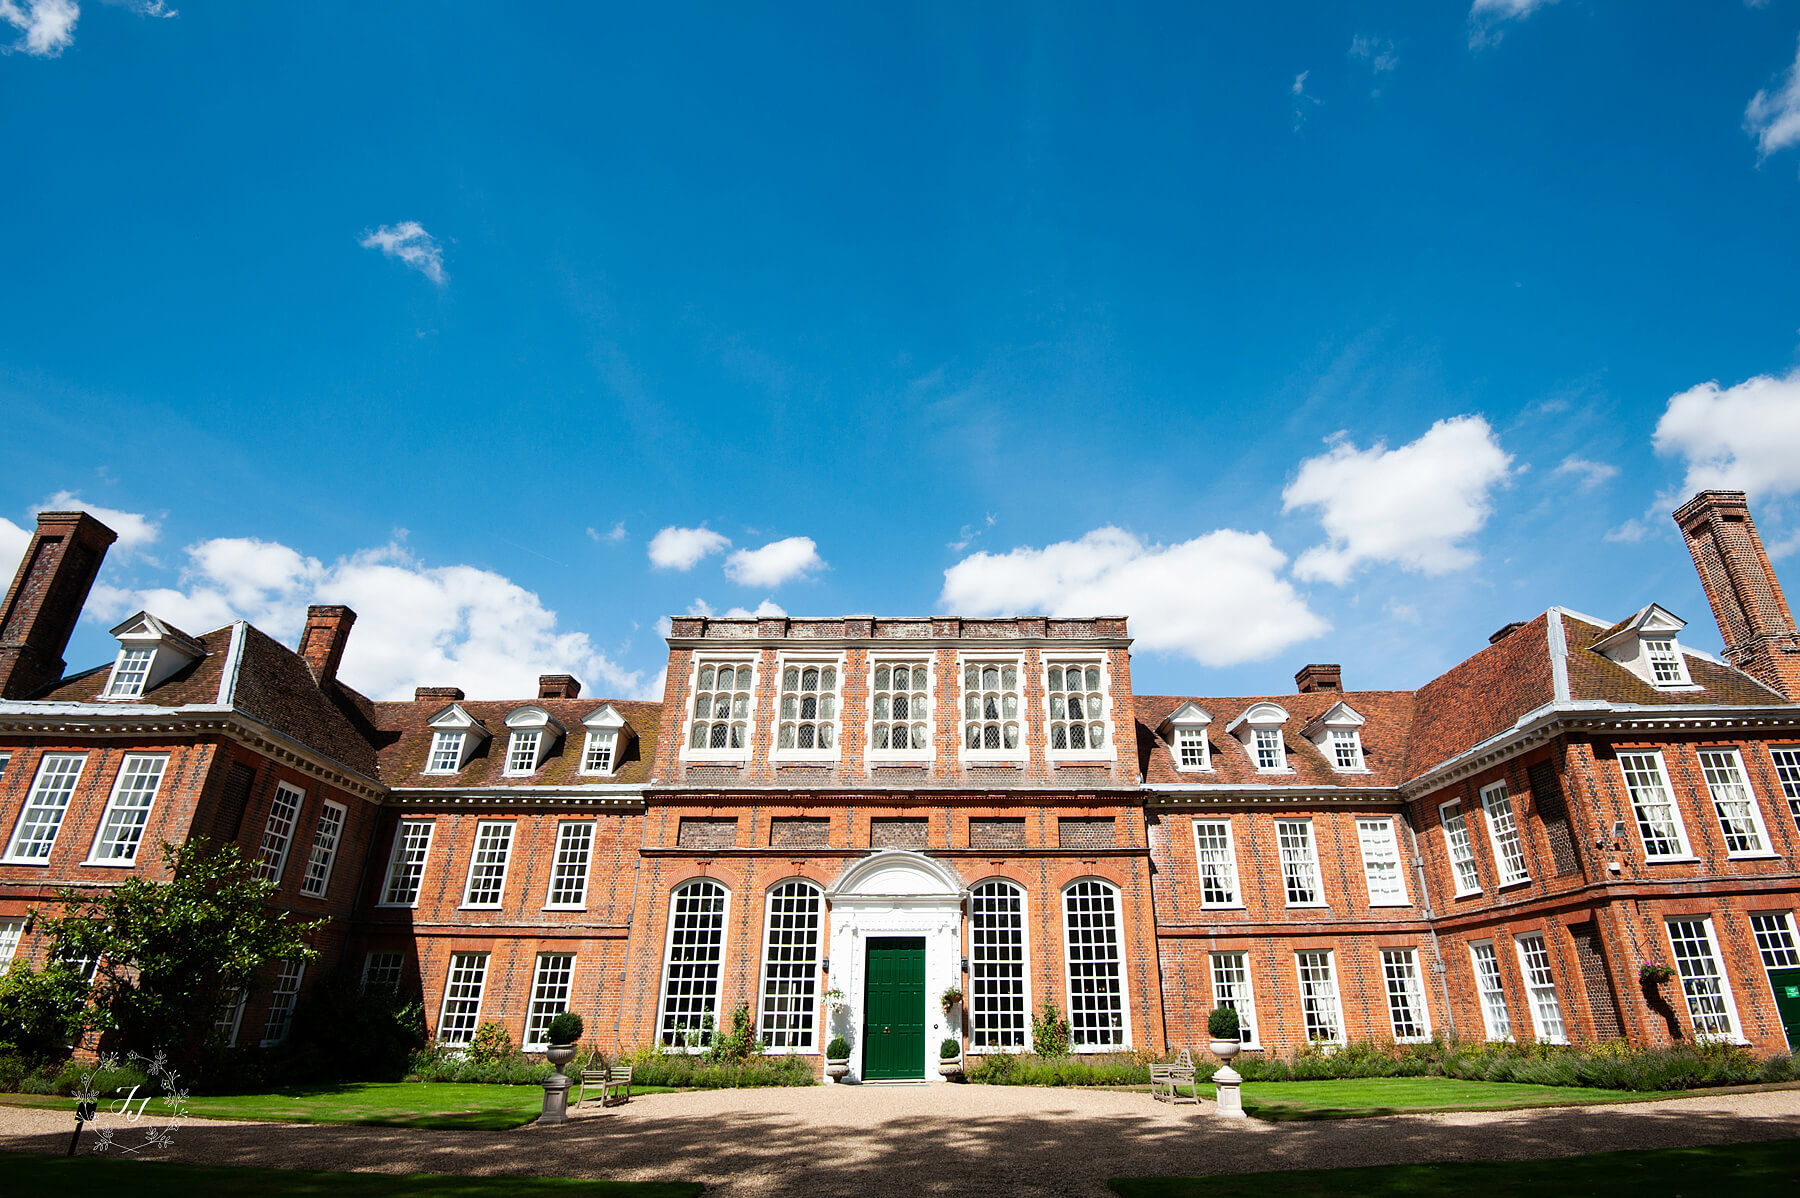 the_main_entrance_to_gosfield_hall_by_foot. Green_Door_and red_brick_building